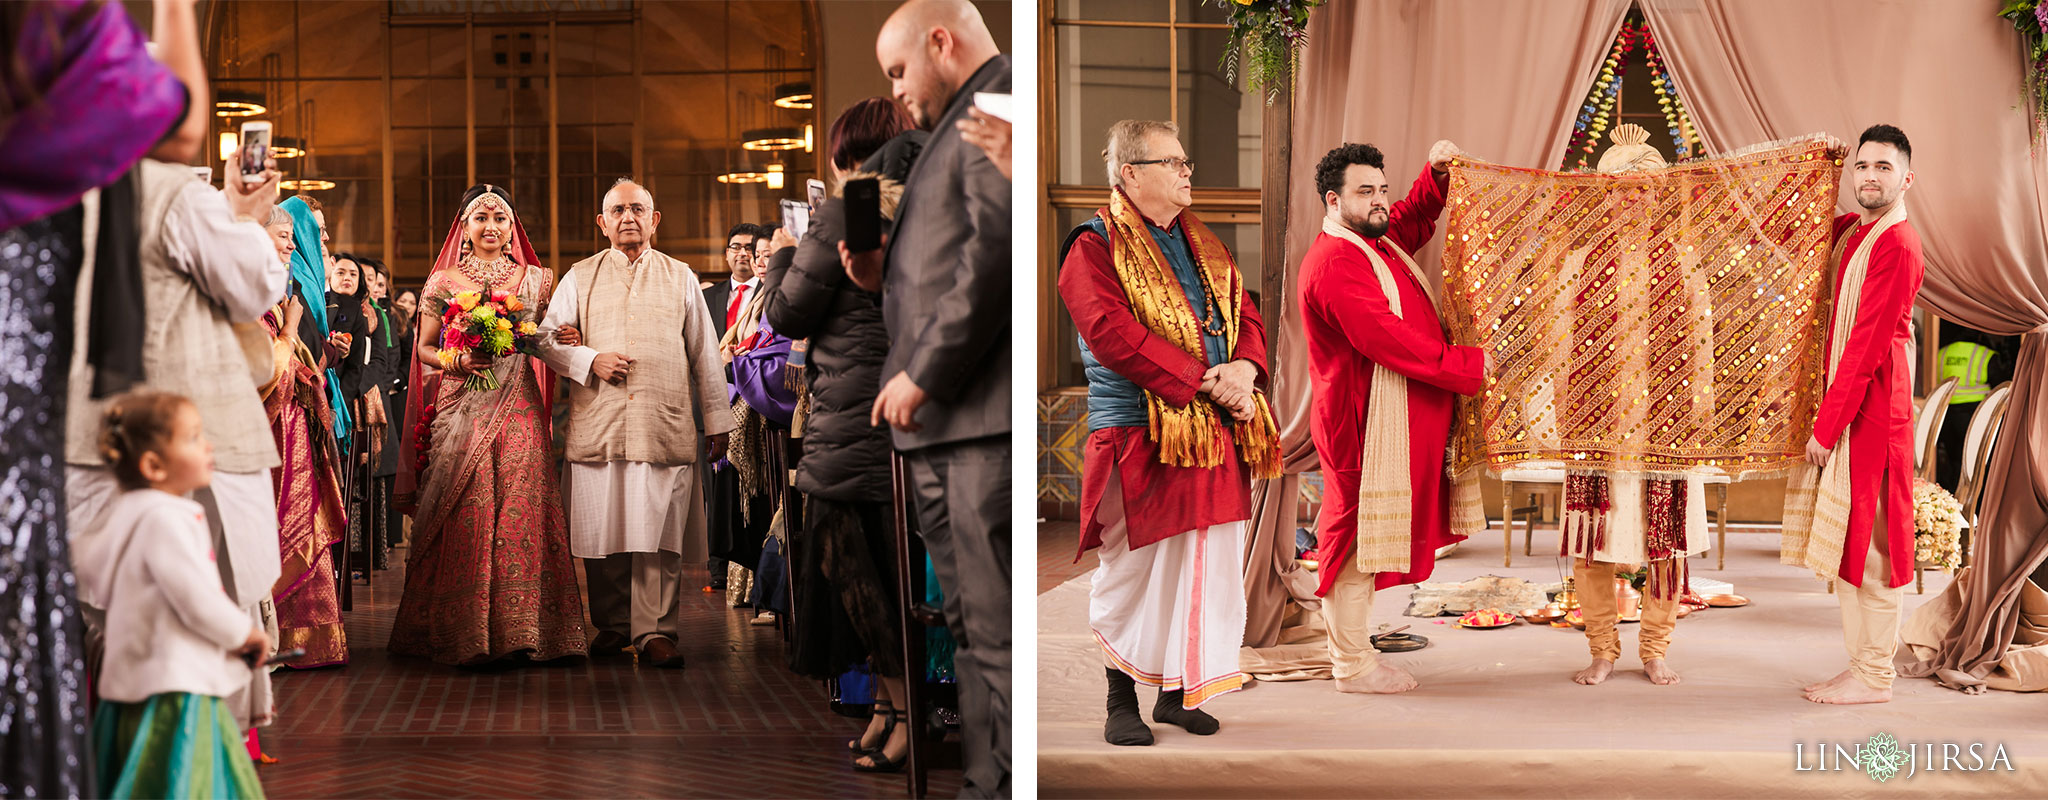 29 Union Station Los Angeles Indian Wedding Photography